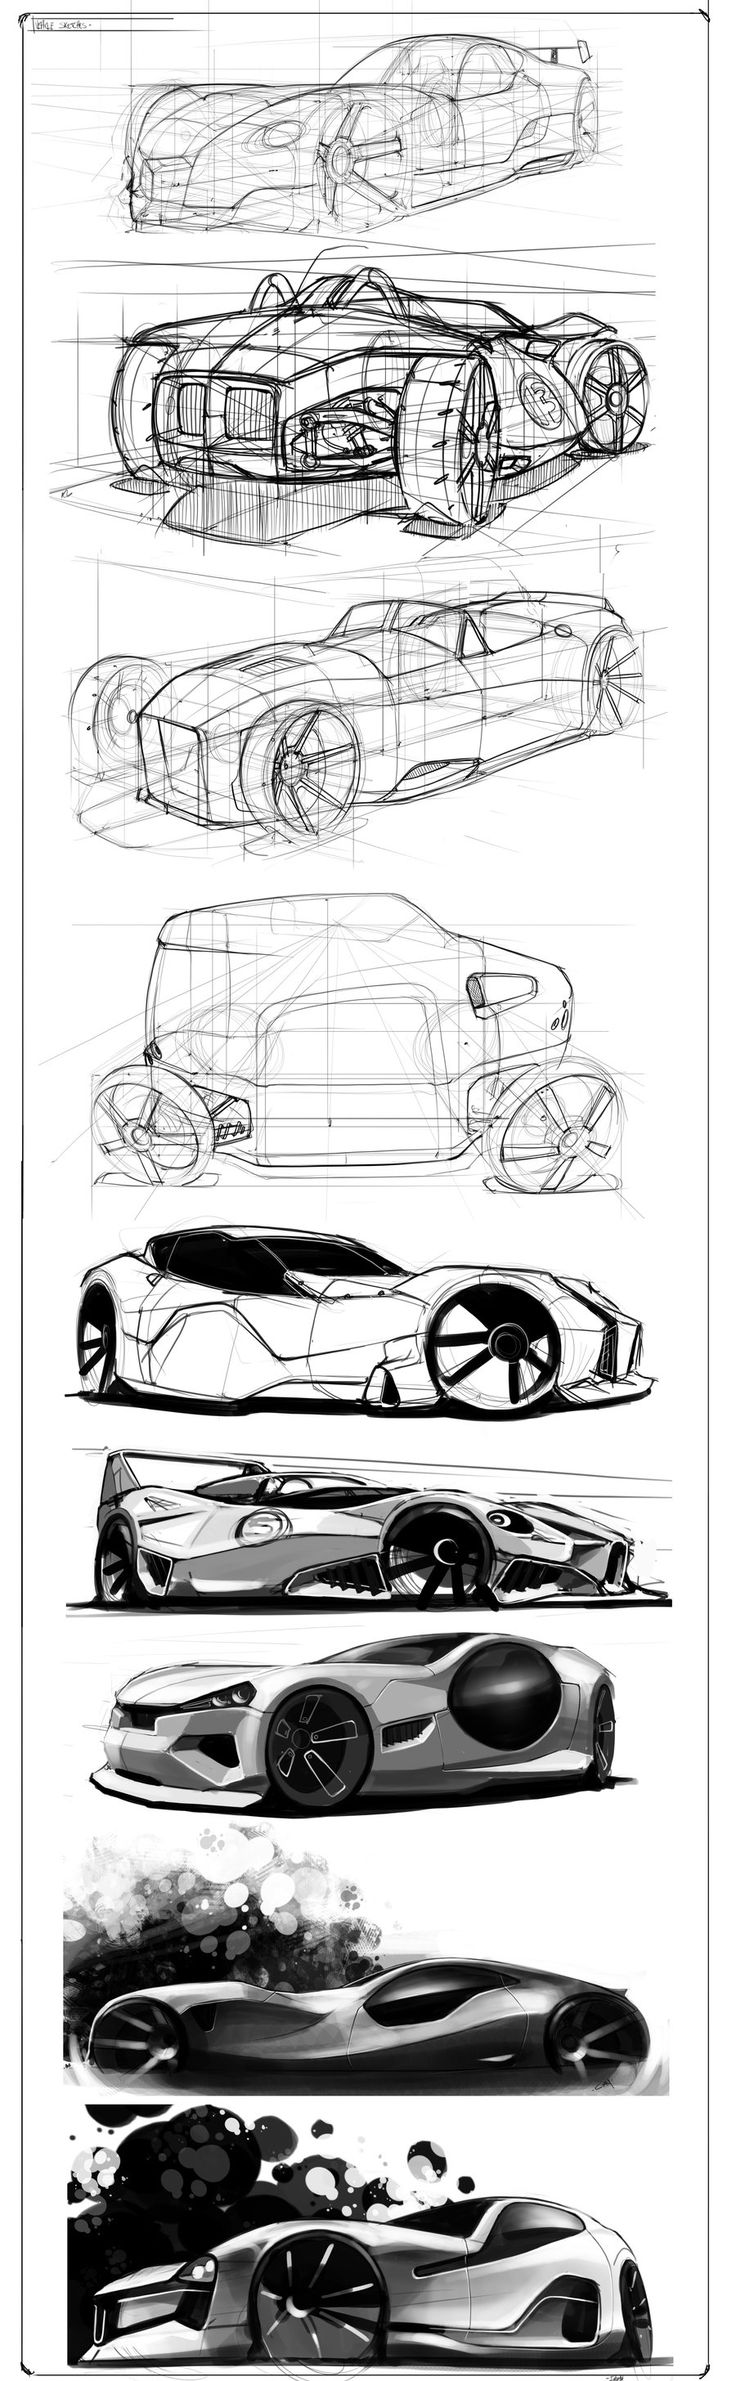 Random Vehicle Sketches. CLICK the PICTURE or check out my BLOG for more: http://automobilevehiclequotes.tumblr.com/#1506280435